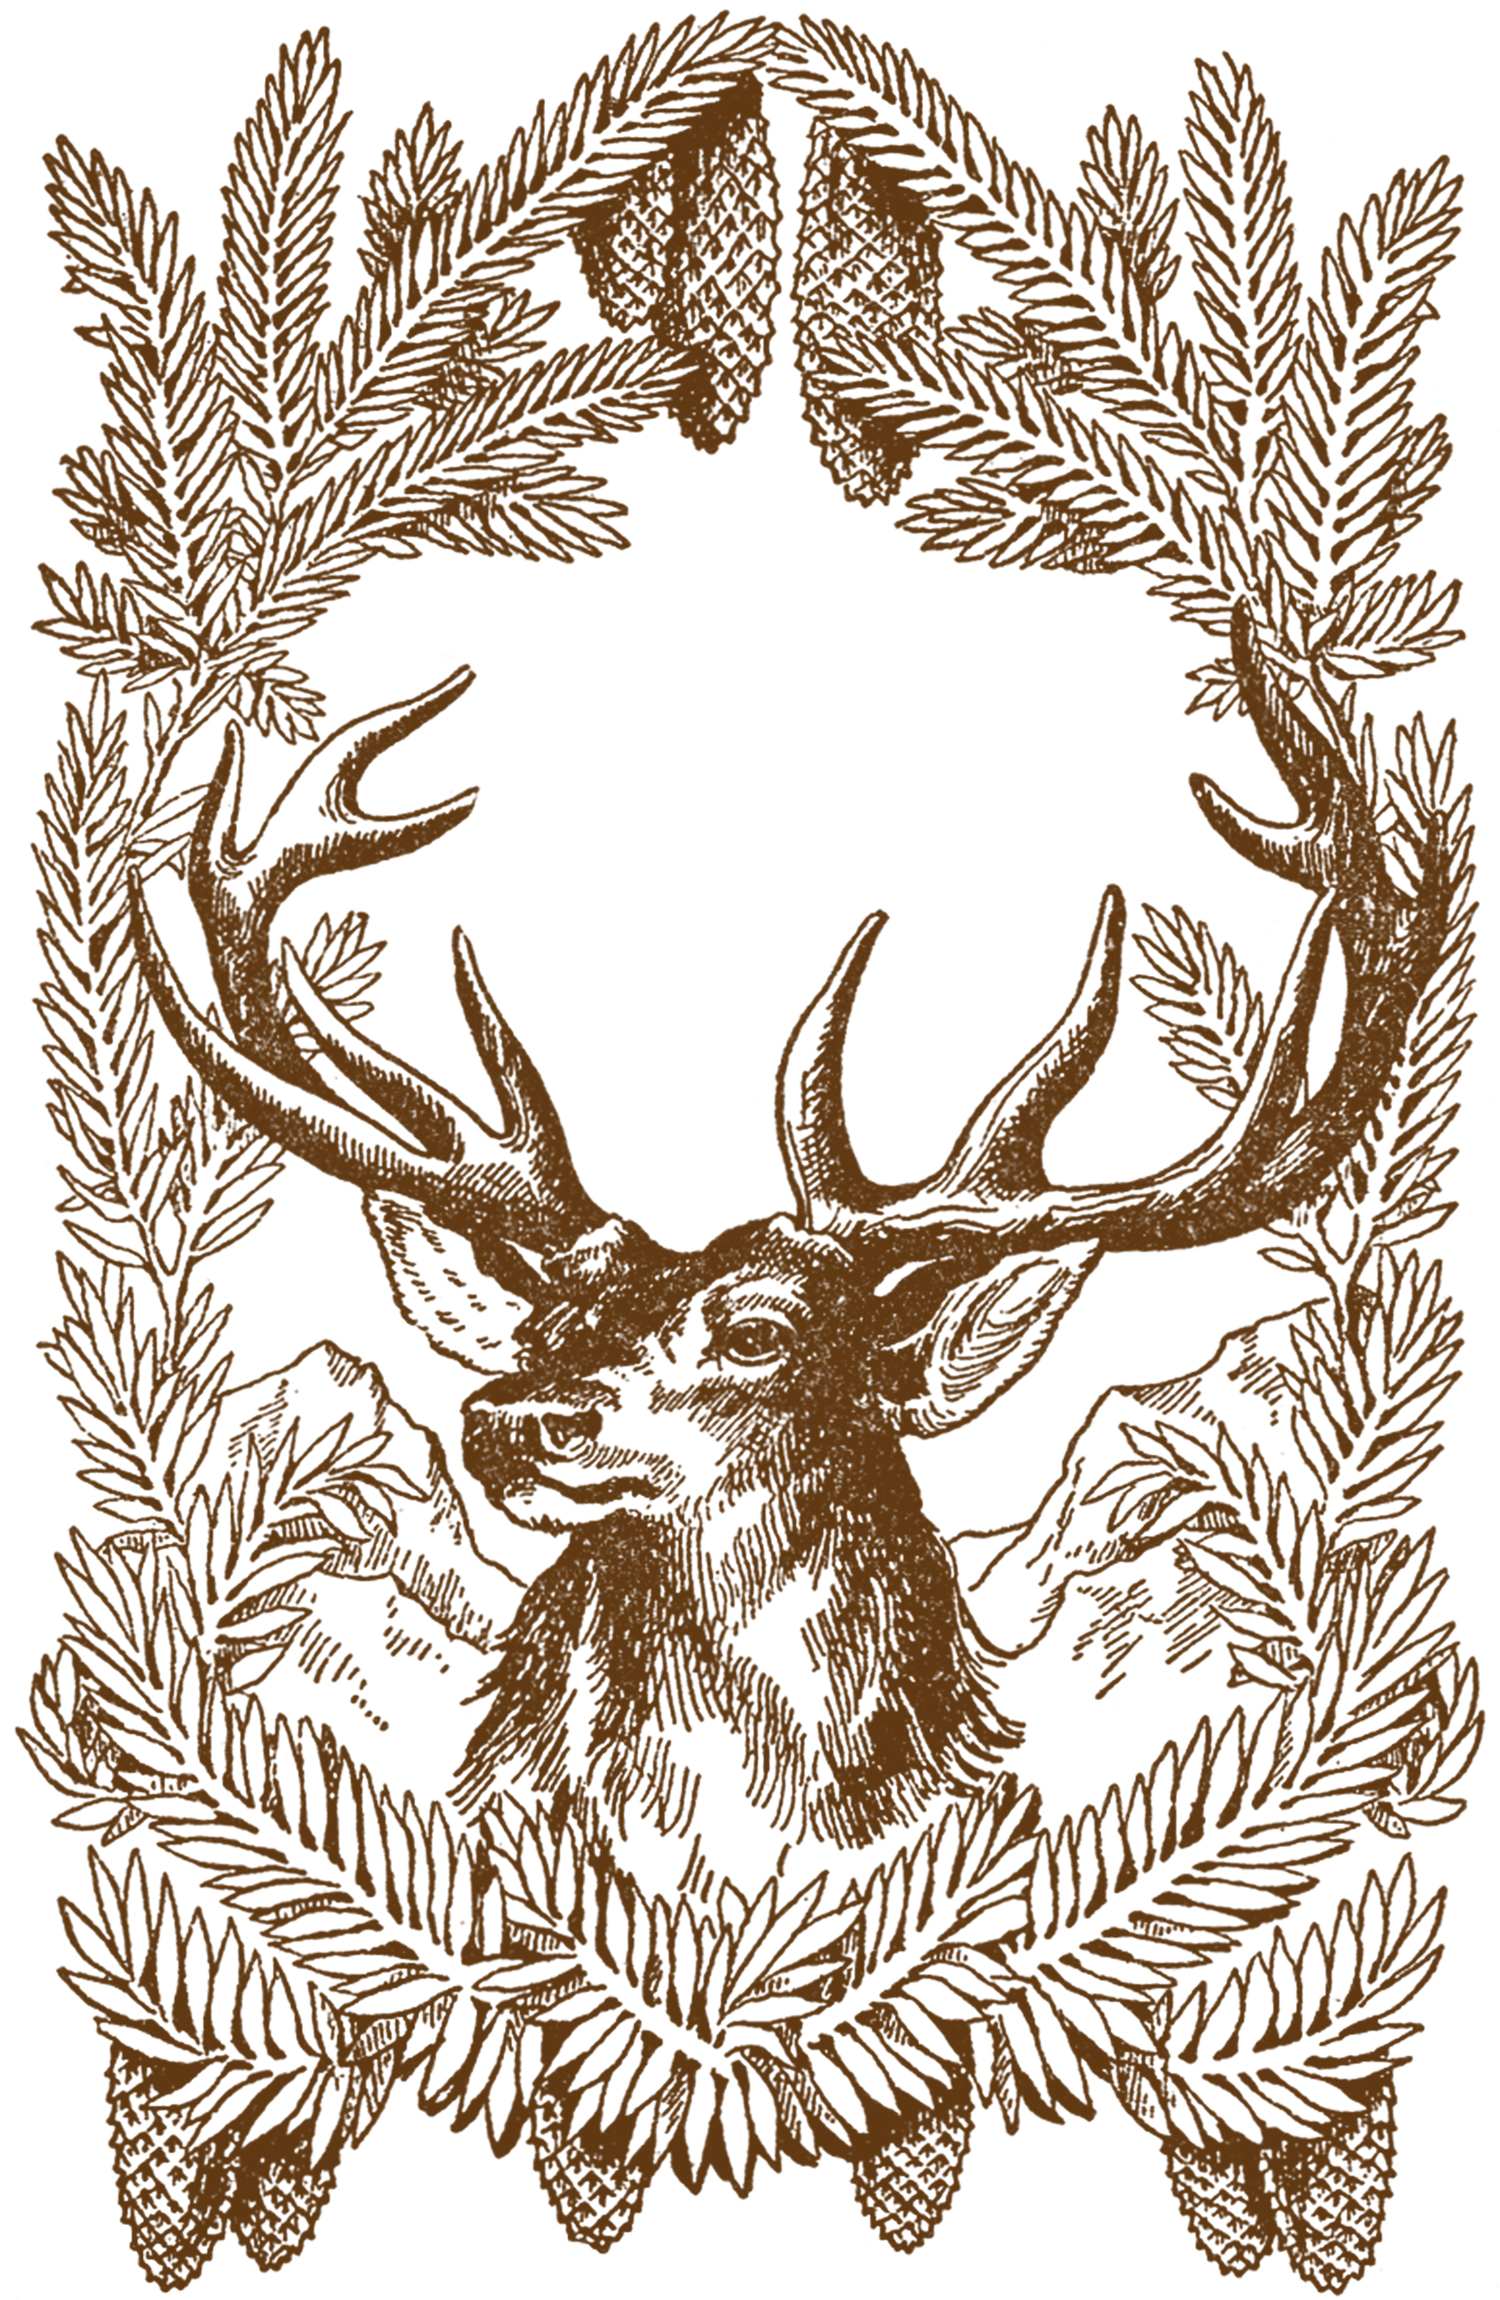 Free Vintage Christmas Pictures - Deer - The Graphics Fairy